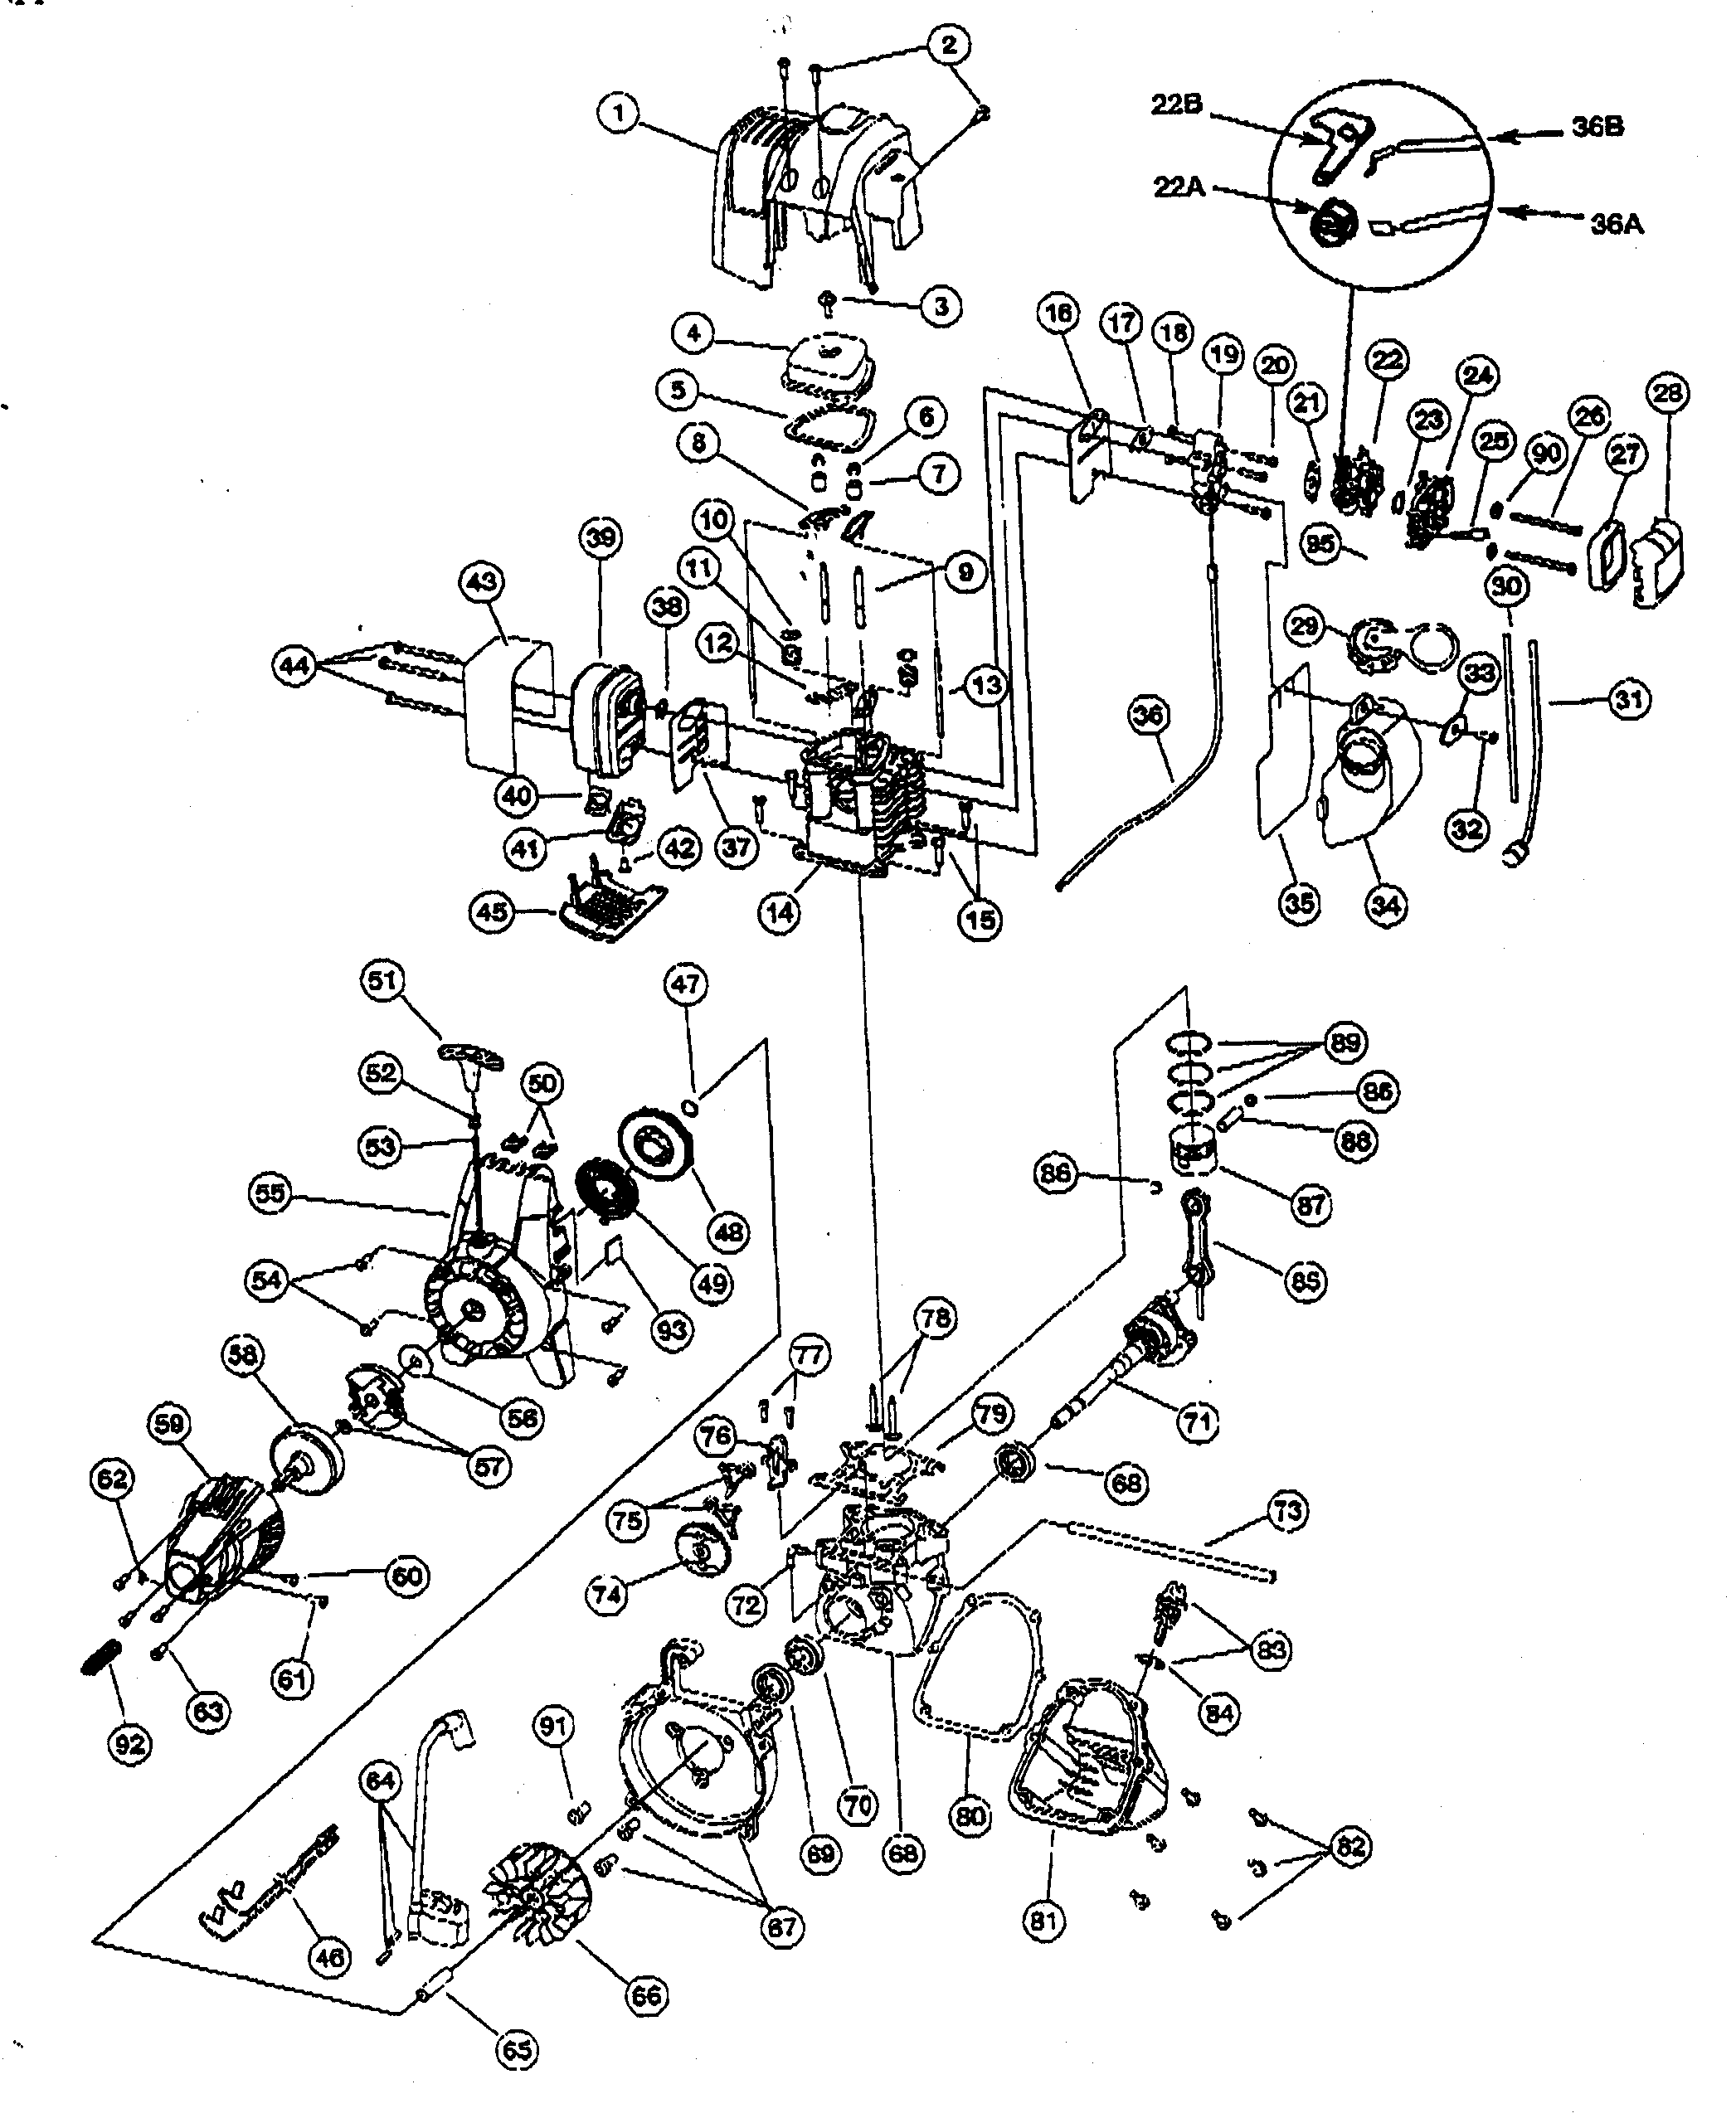 Ryobi Engine Diagram Auto Electrical Wiring Ss30 Parts List And Ry30040 Ereplacementpartscom U0026 For Model 875